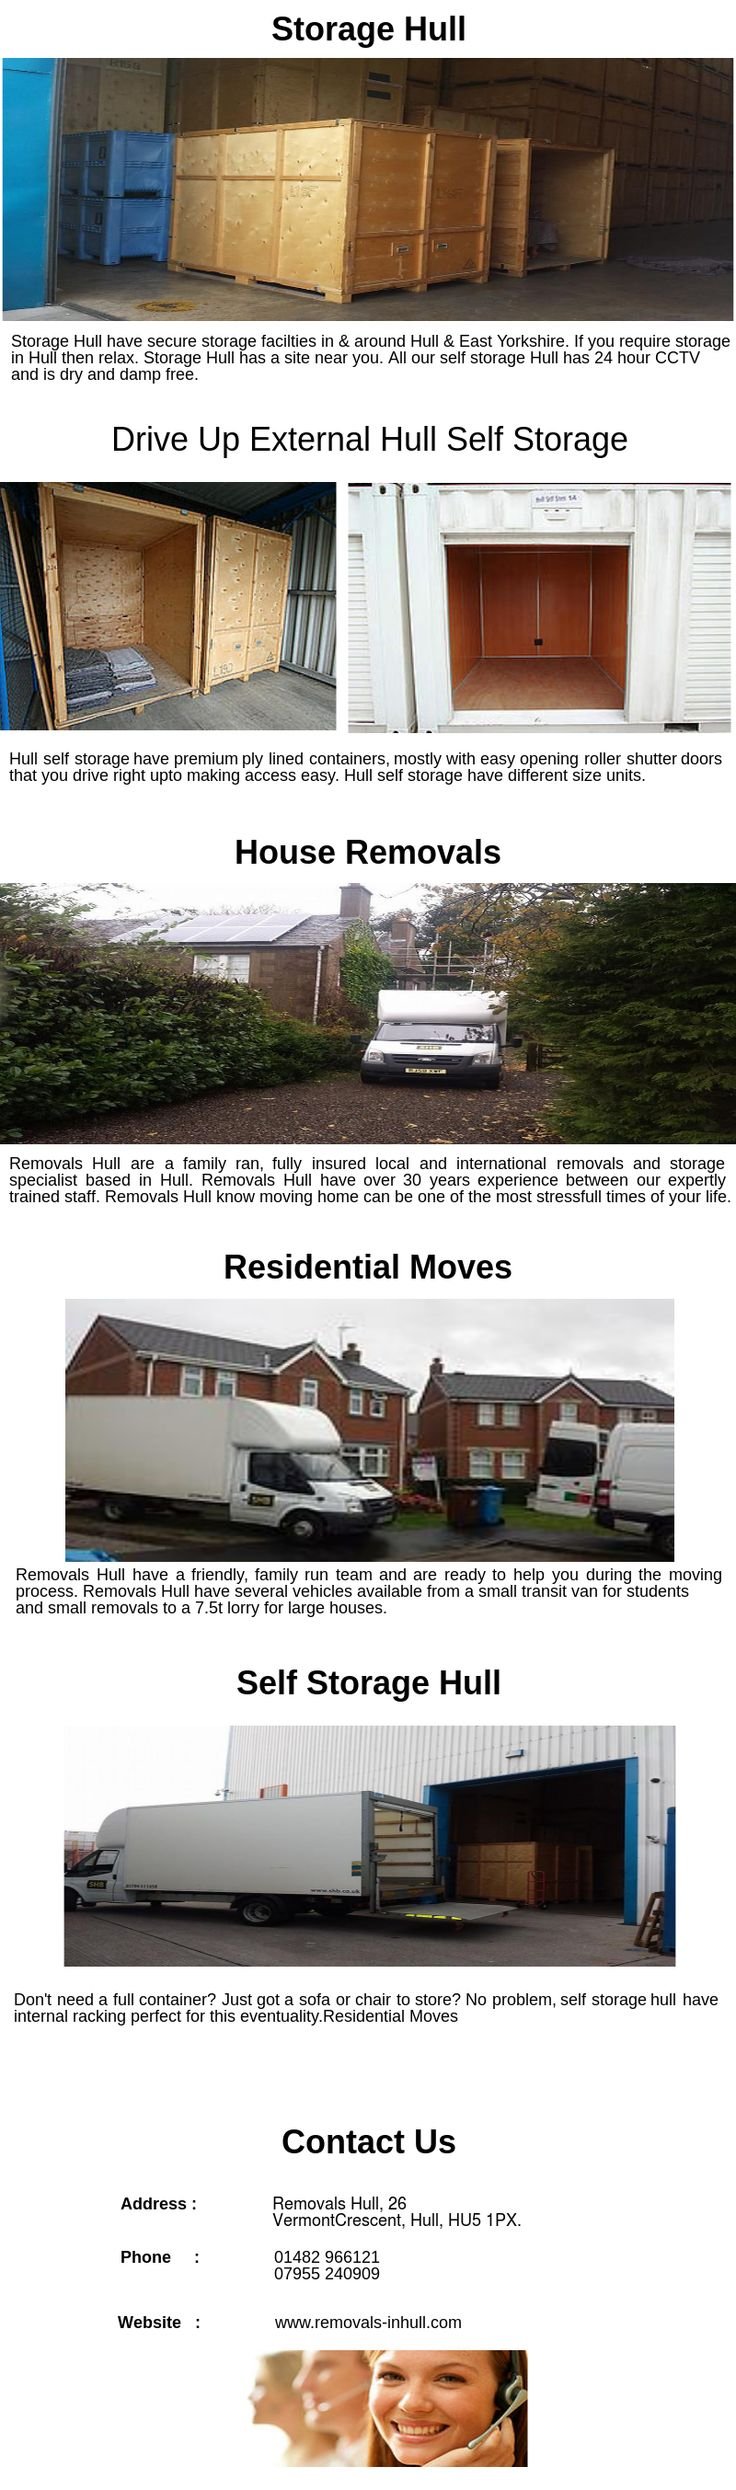 Removals Hull have over 30 years experience between our expertly trained staff.